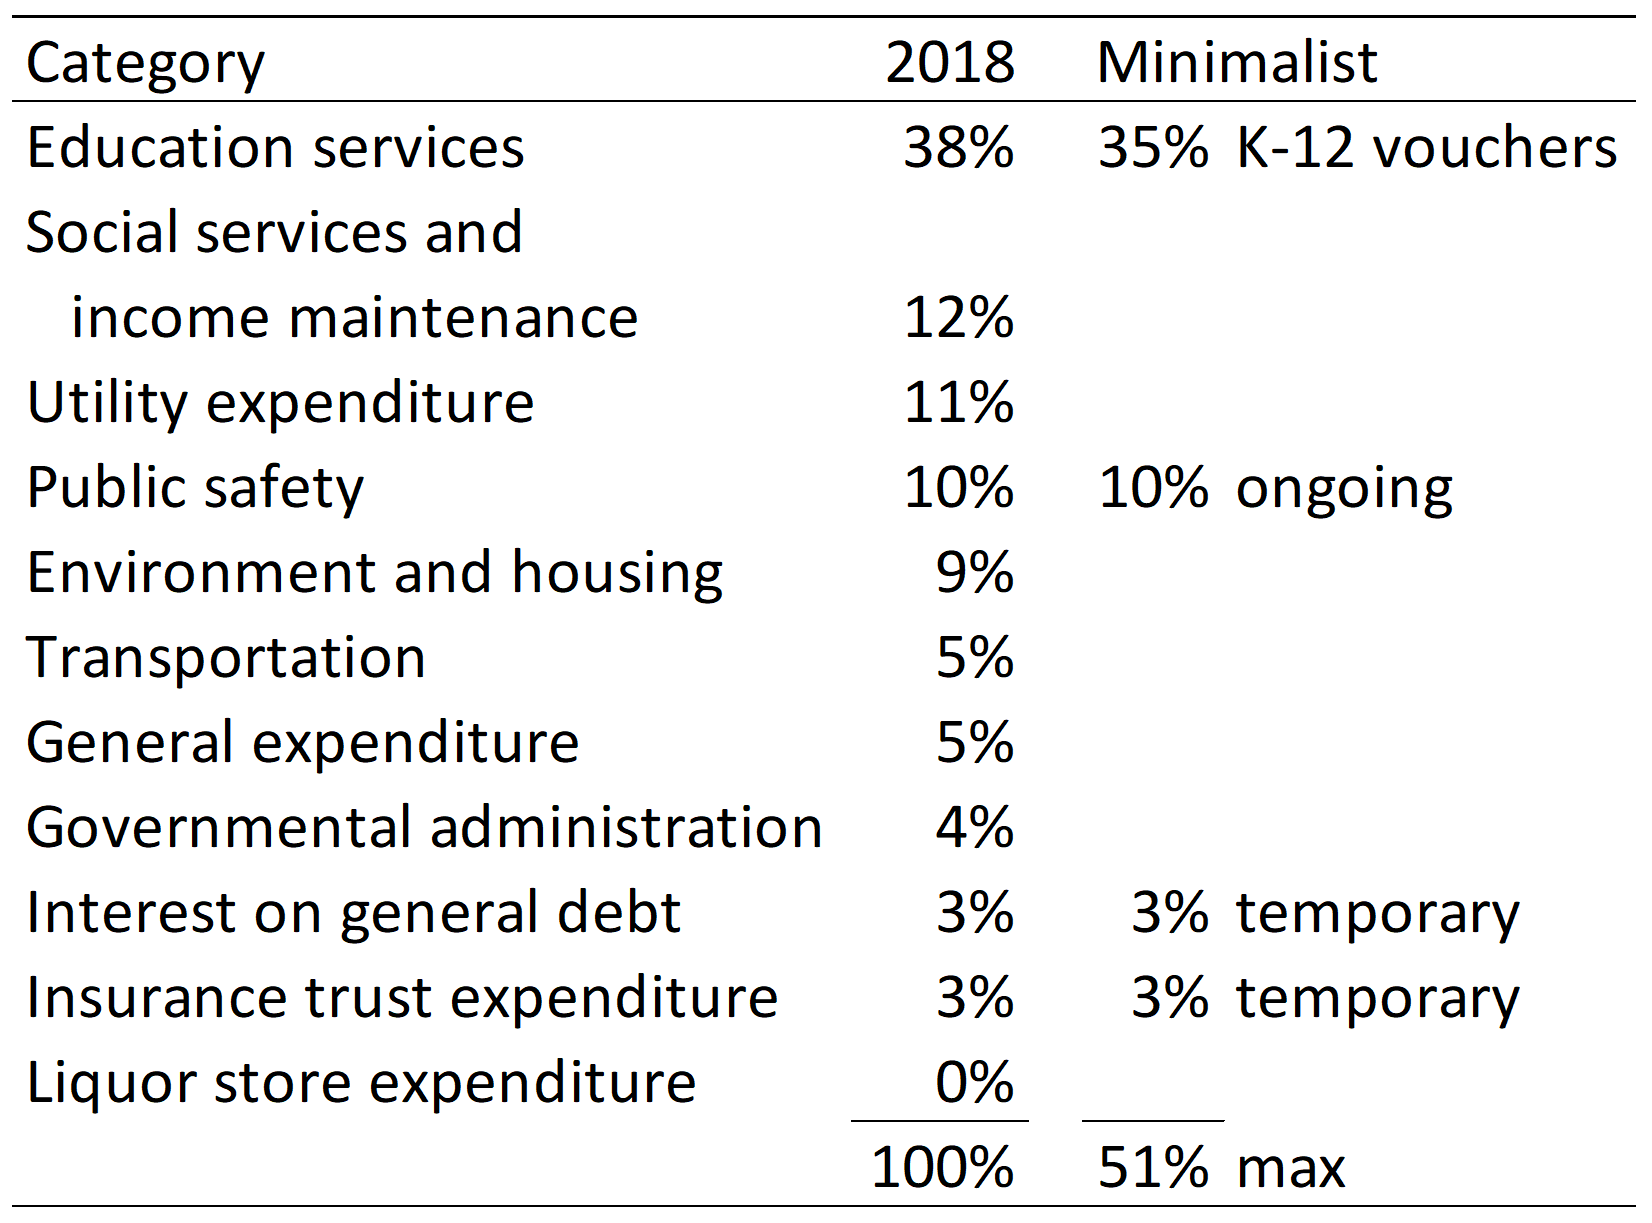 Local-government spending by category in 2018, and potential spending in minimalist neighborhood cities